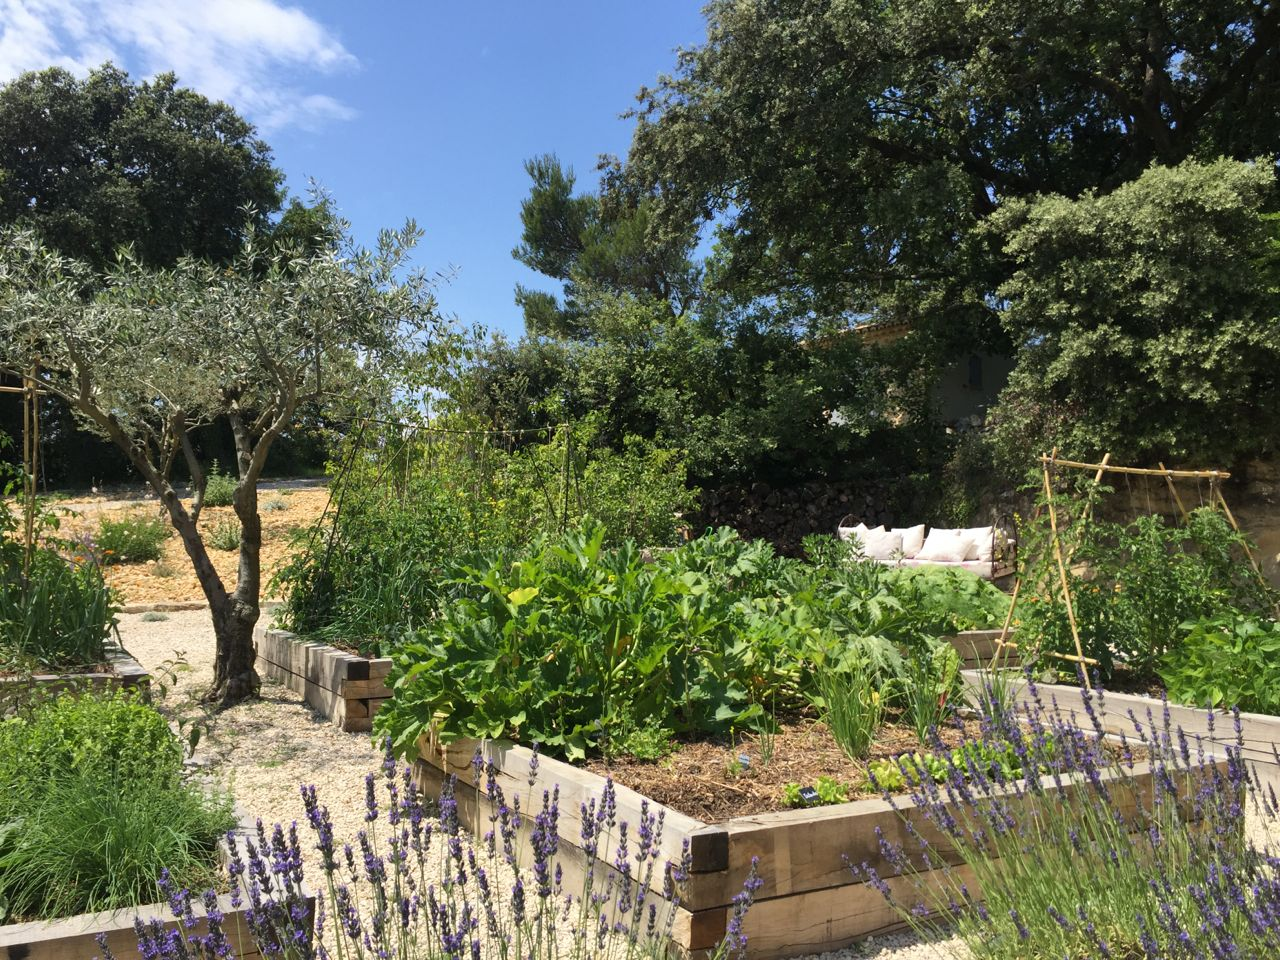 June in the kitchen garden